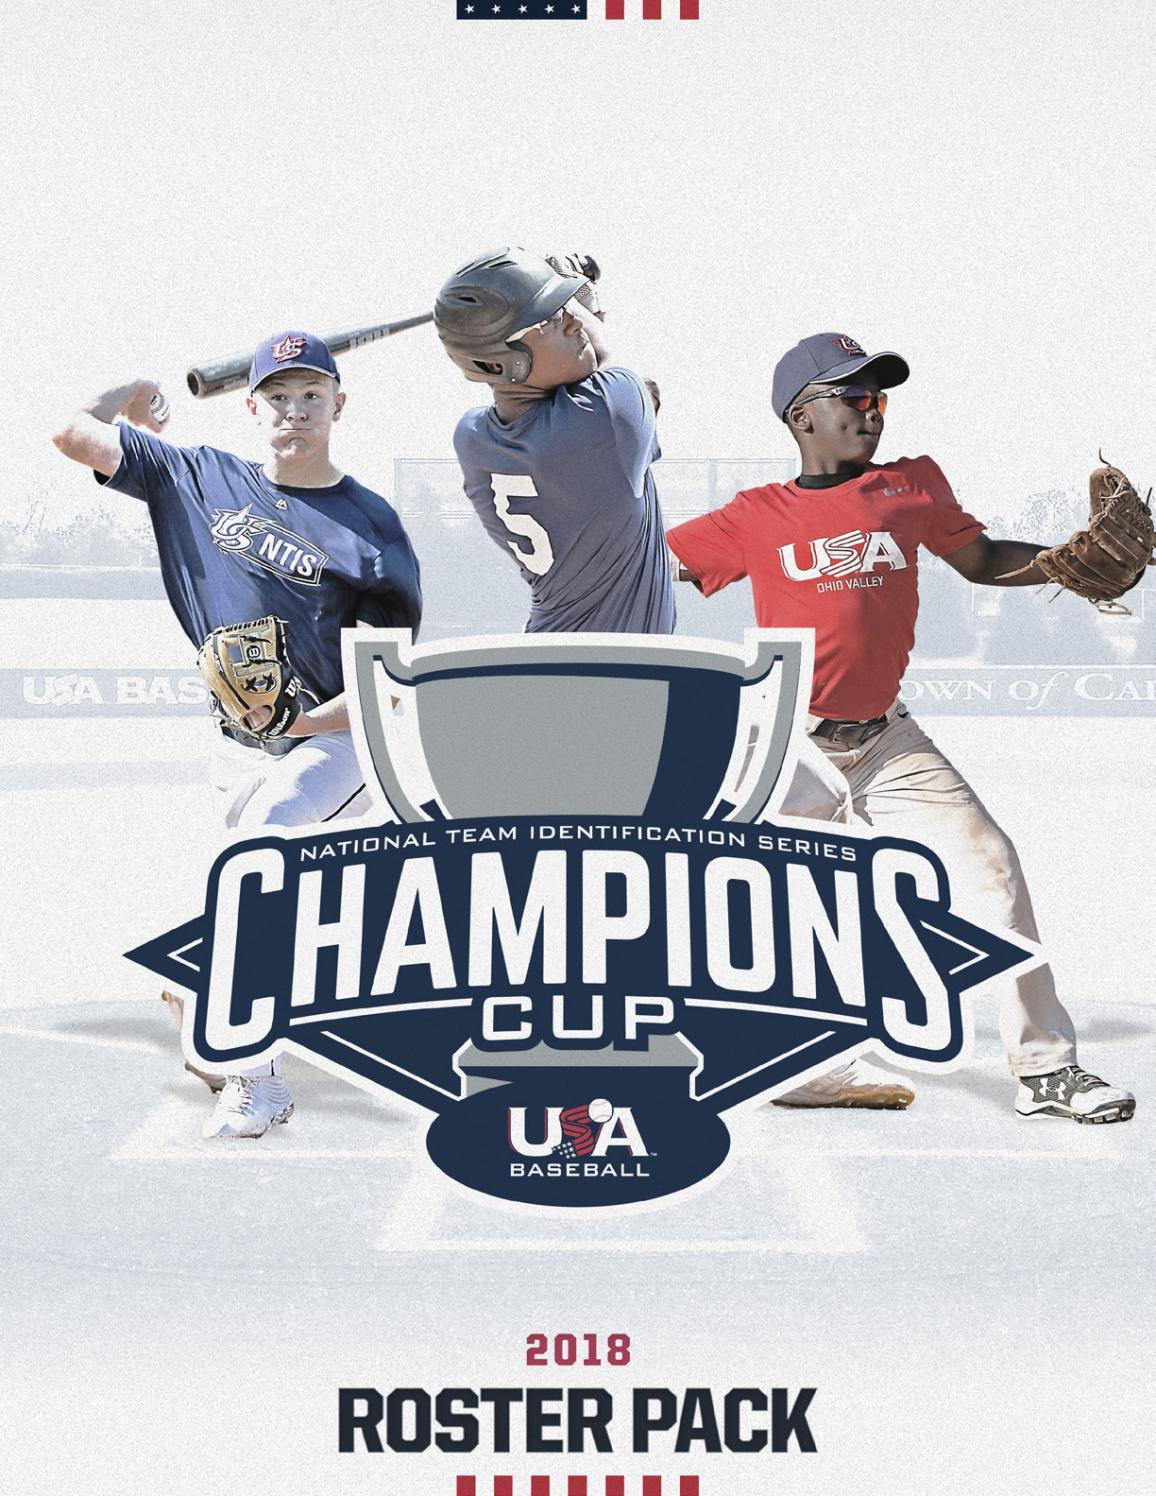 When Is Christmas Break For Moorpark College 2020-2022? 2018 NTIS Champions Cup Program by USA Baseball   issuu